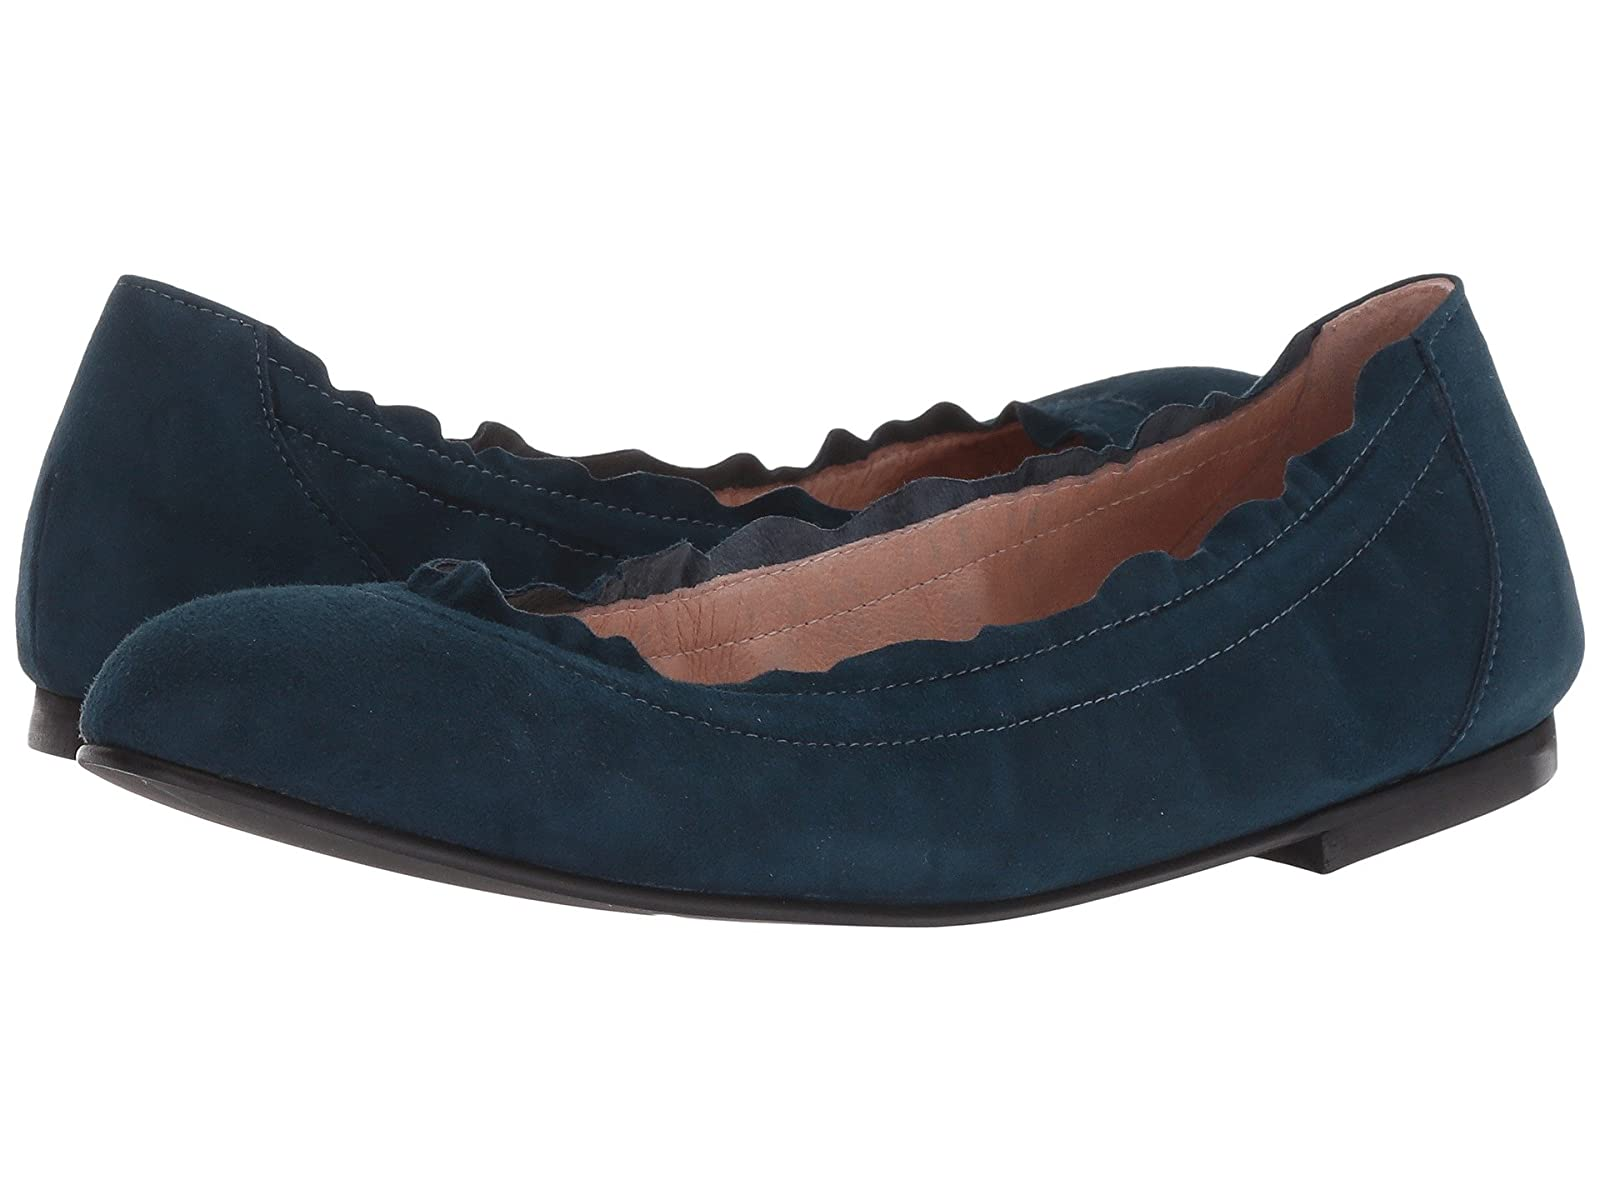 French Sole Cuff FlatAtmospheric grades have affordable shoes